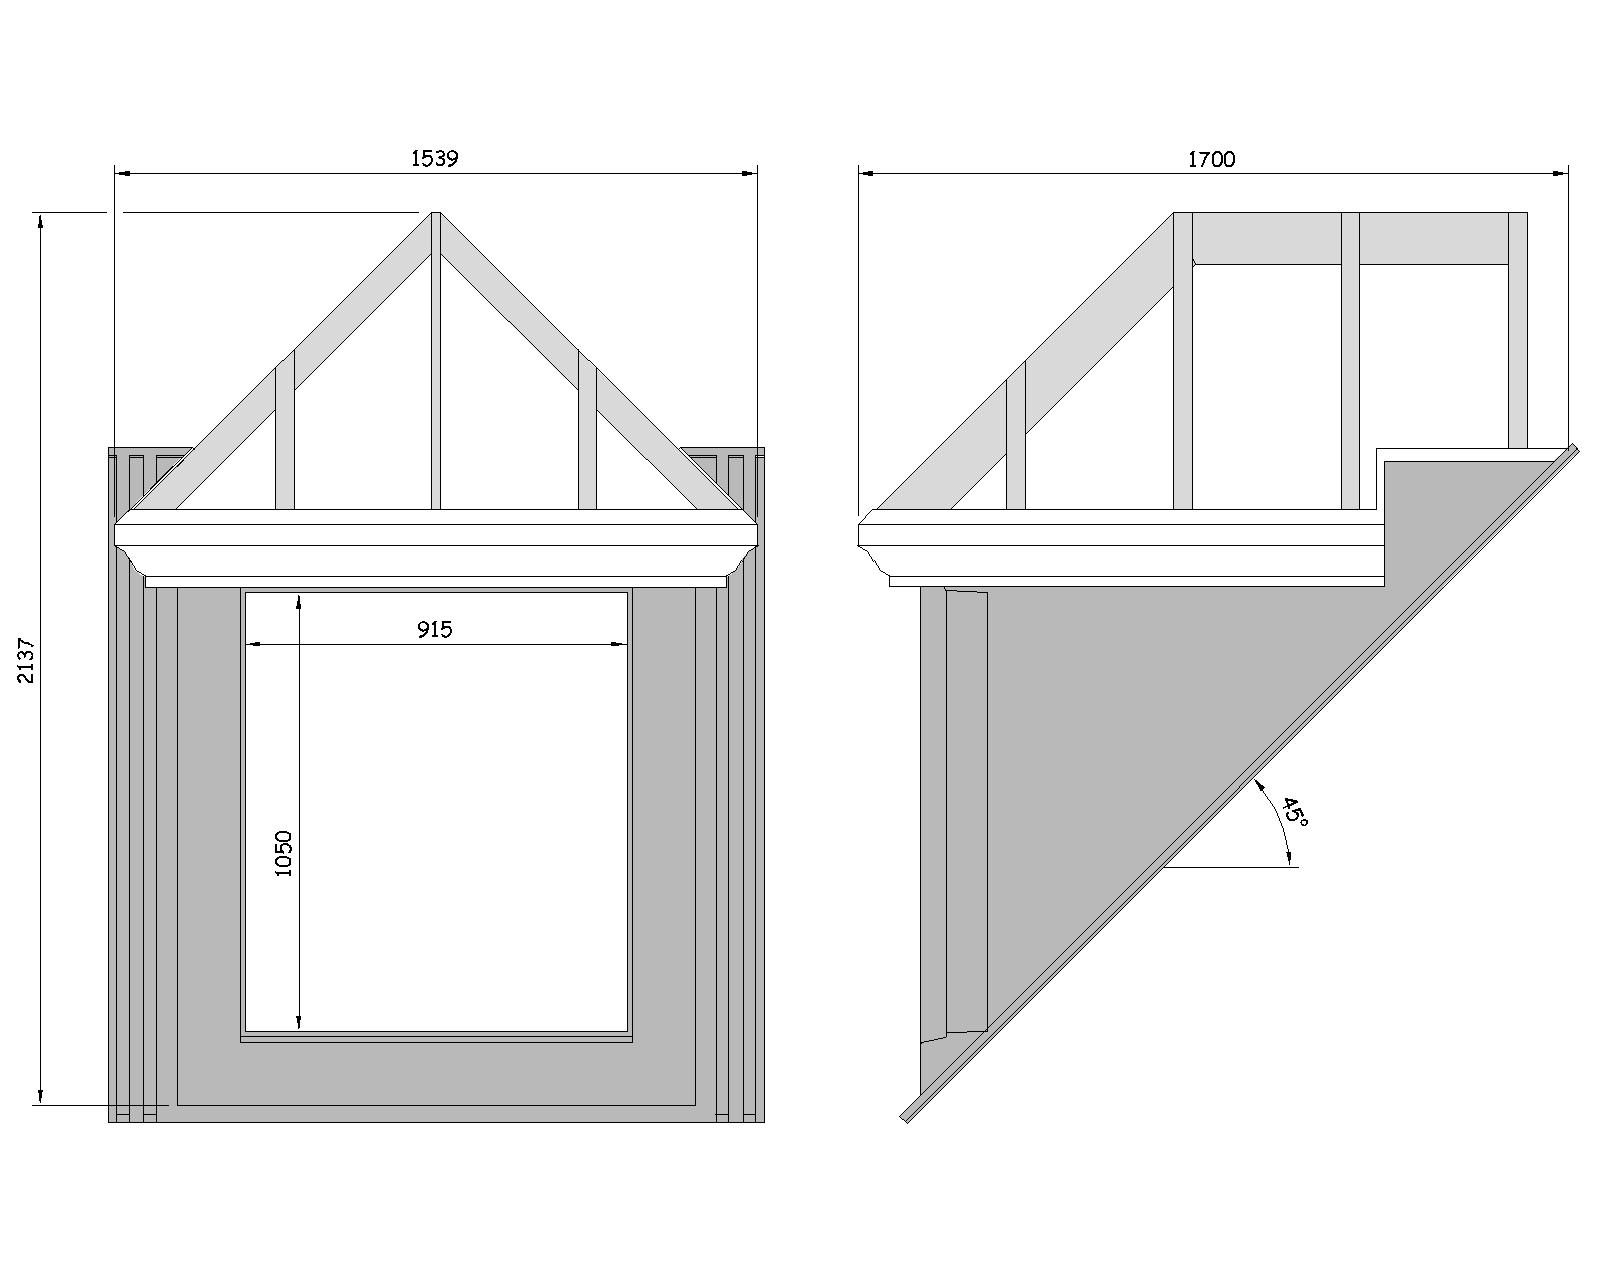 45 Apex Hipped Roof Dormer Wbp 80138 Grp Window Surrounds